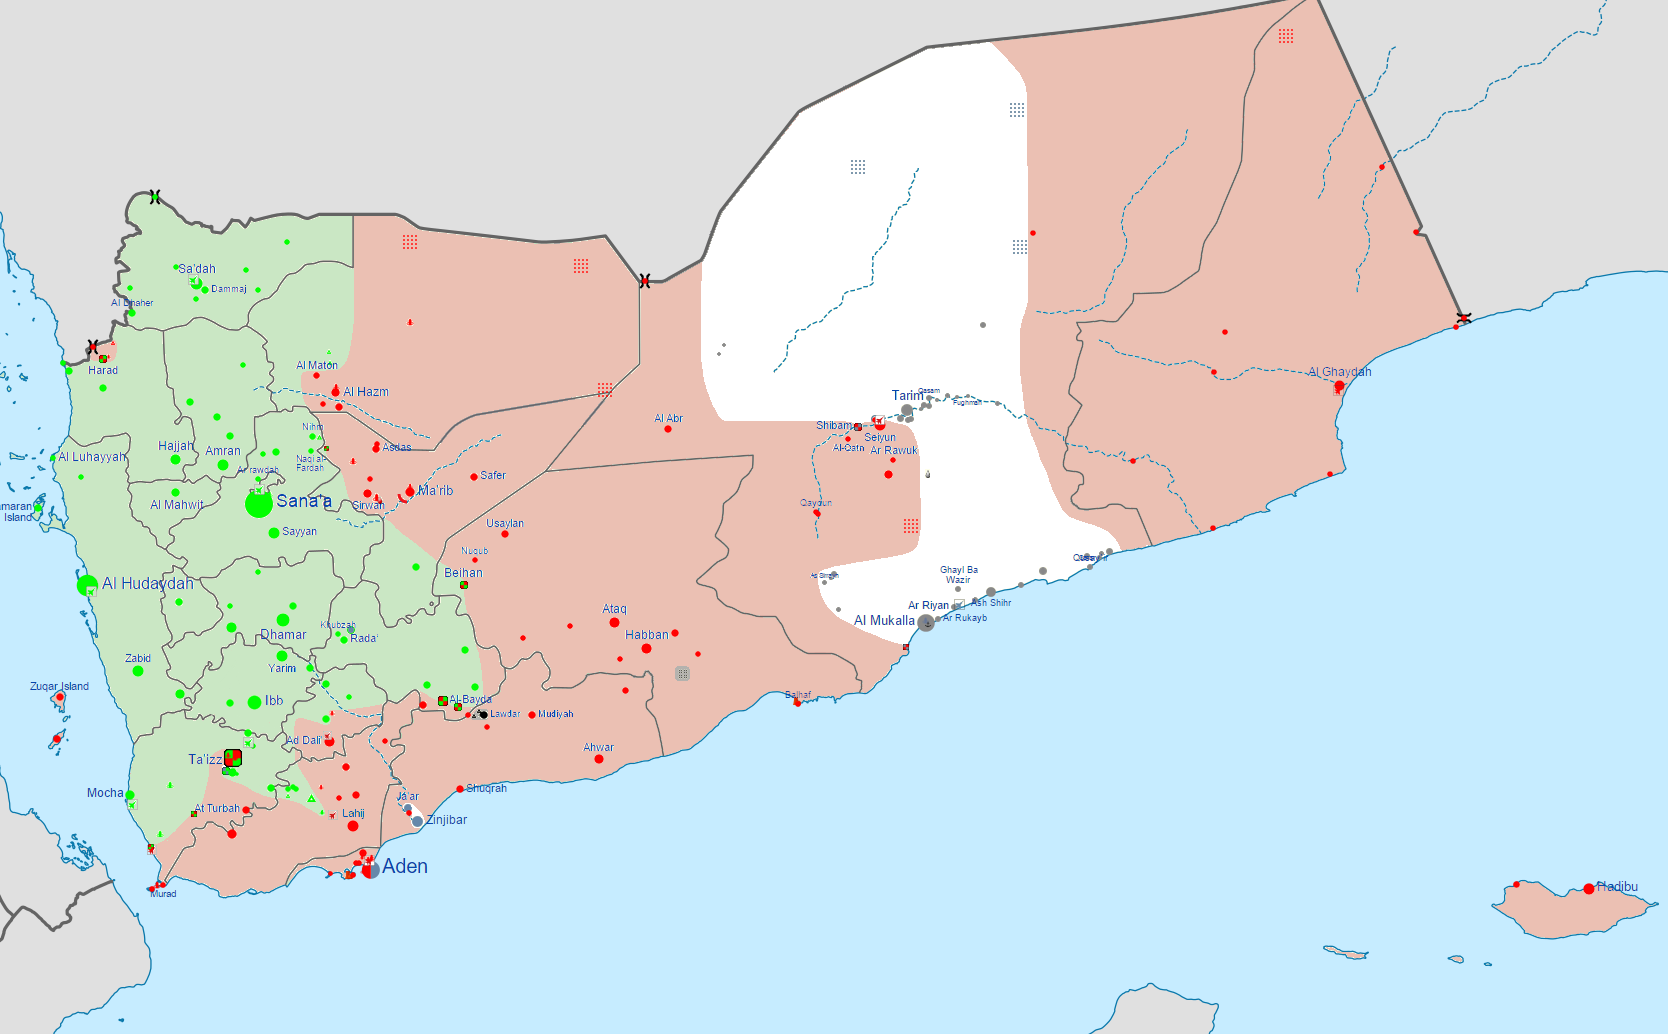 Yemen Airspace Declared A No Fly Zone